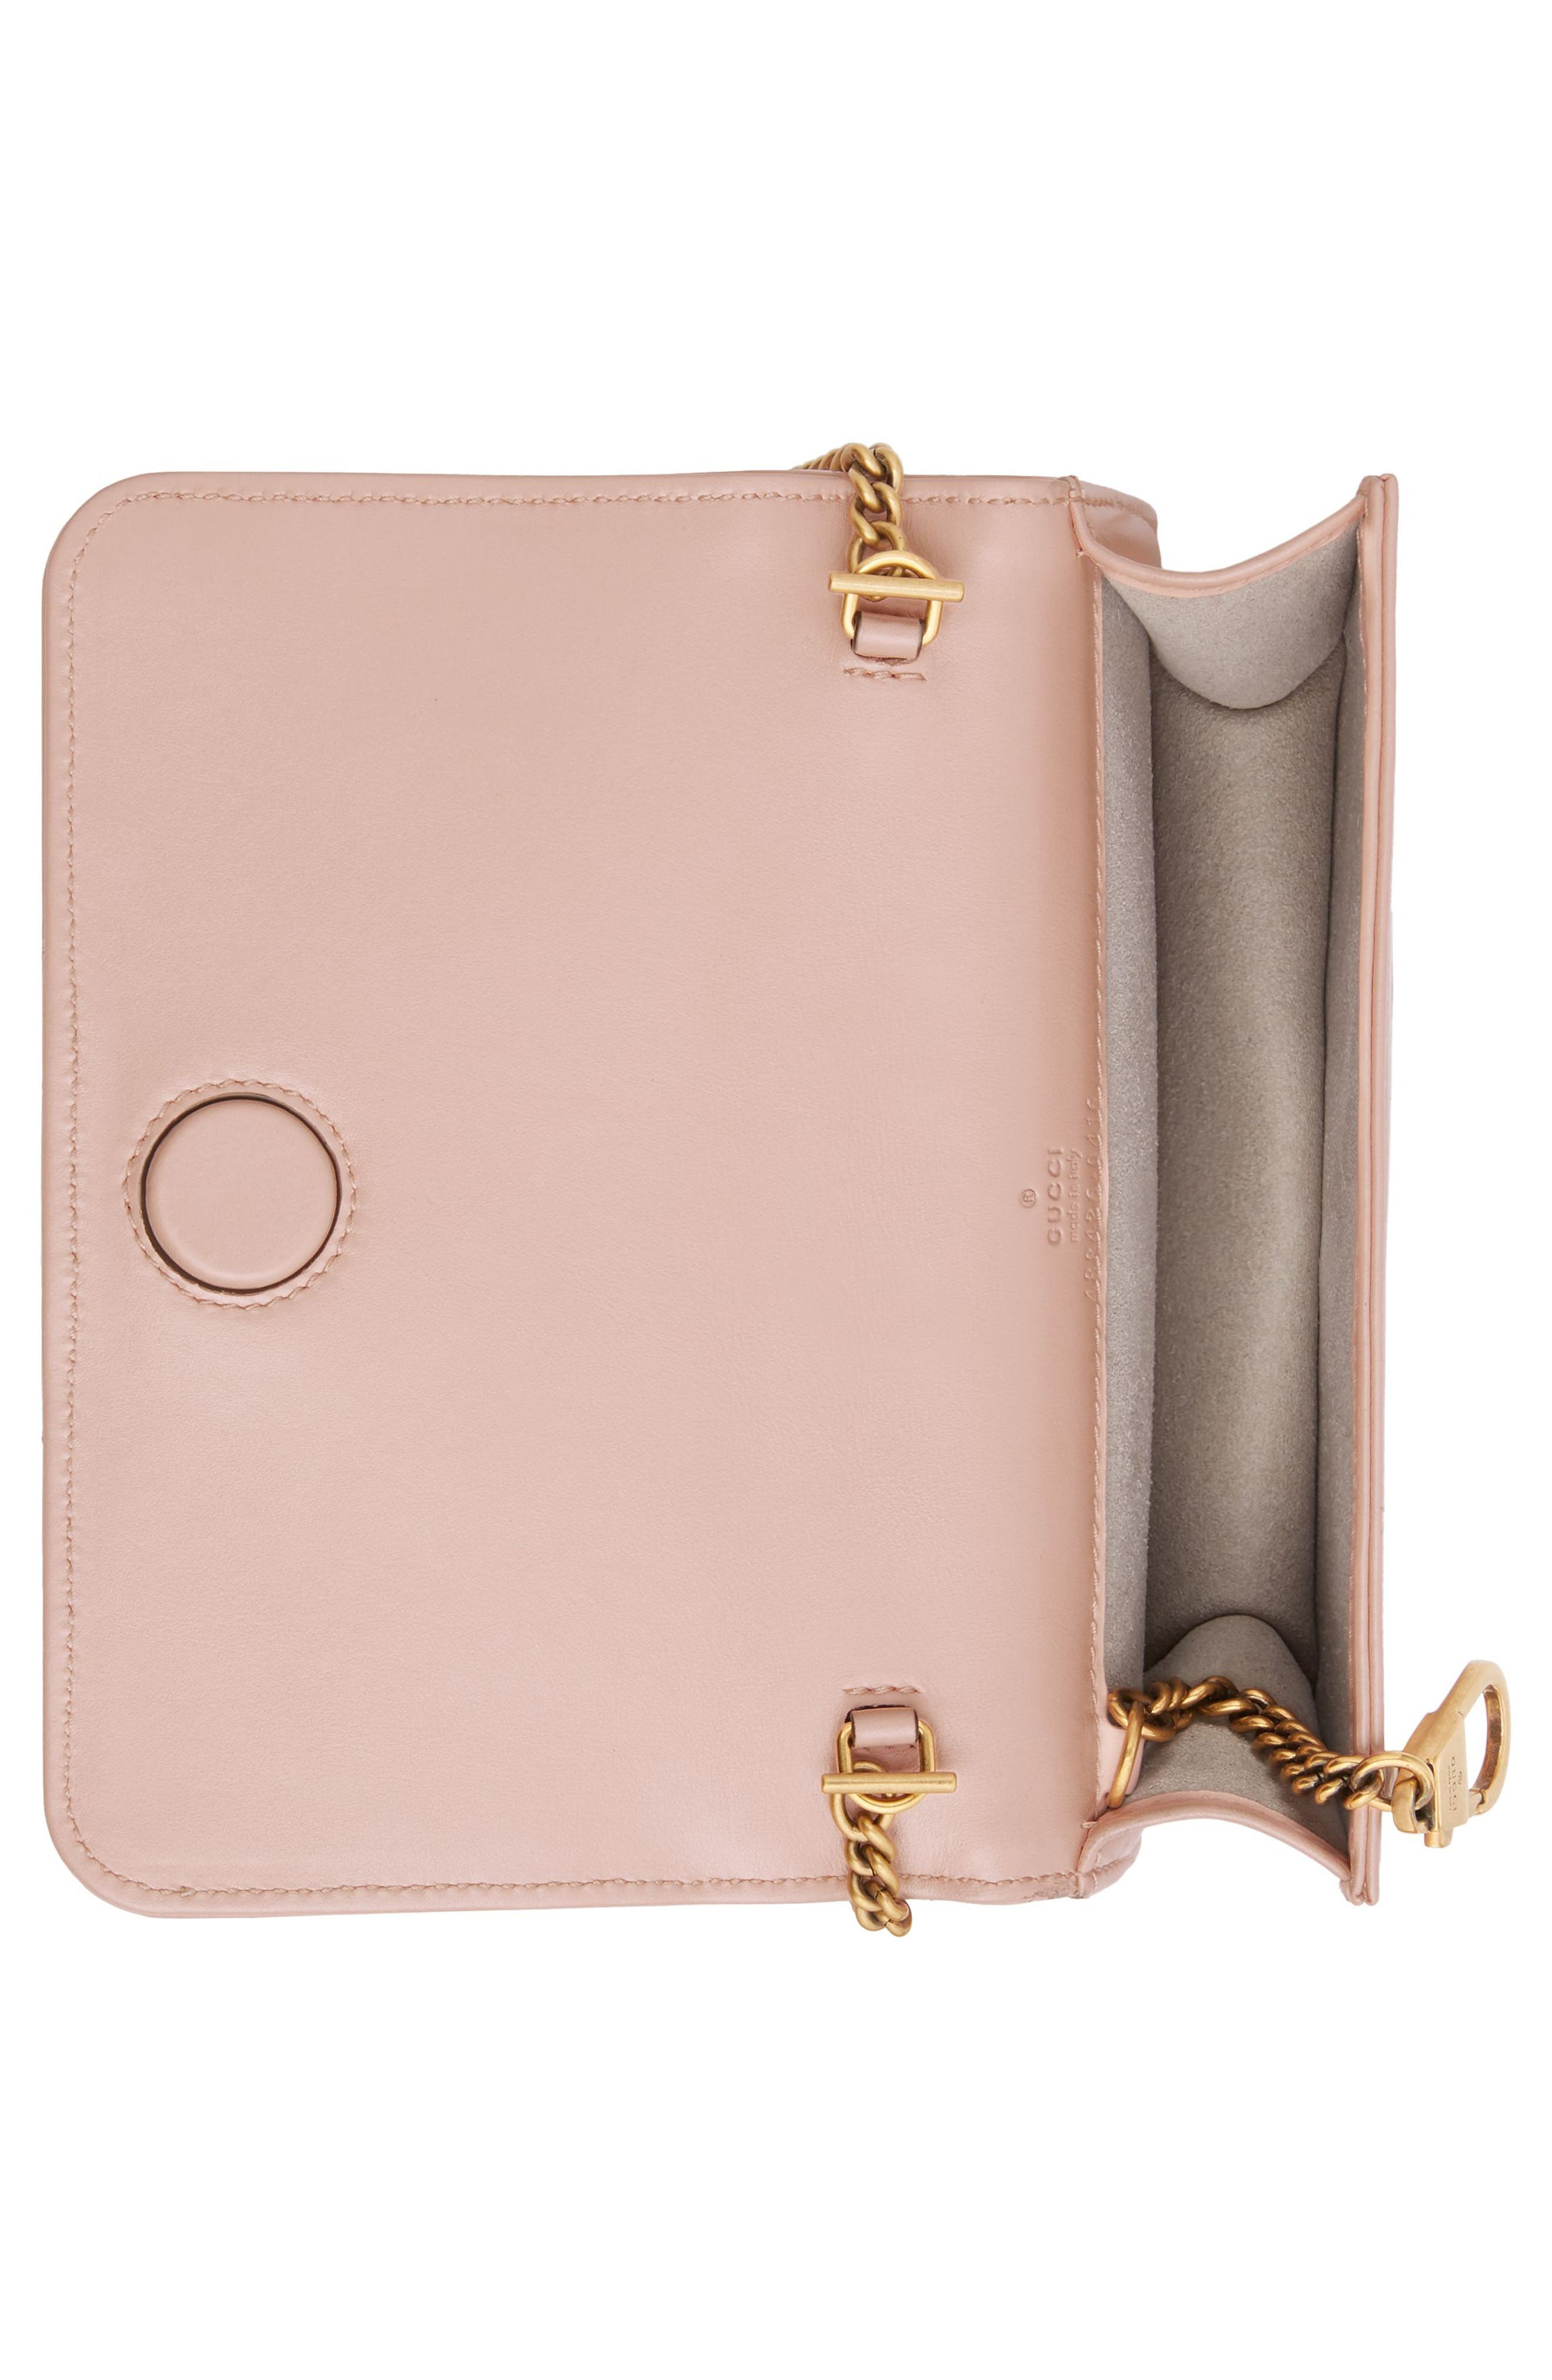 Marmont 2.0 Leather Shoulder Bag,                             Alternate thumbnail 3, color,                             PERFECT PINK